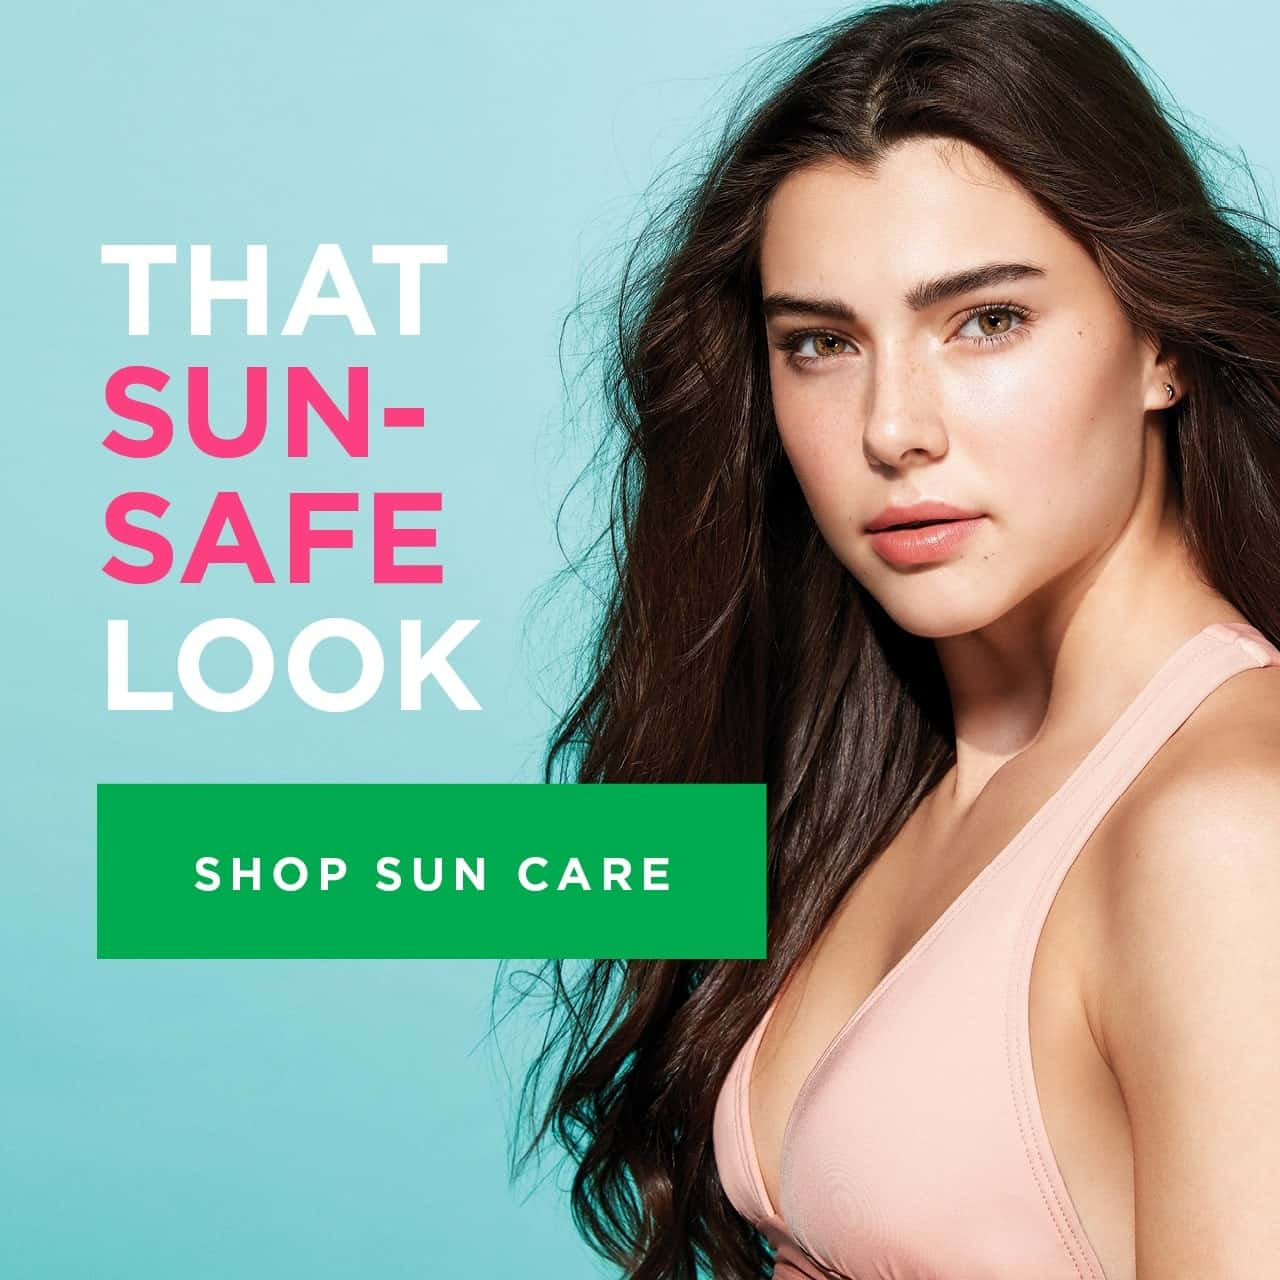 That sun-safe look. Shop Sun Care